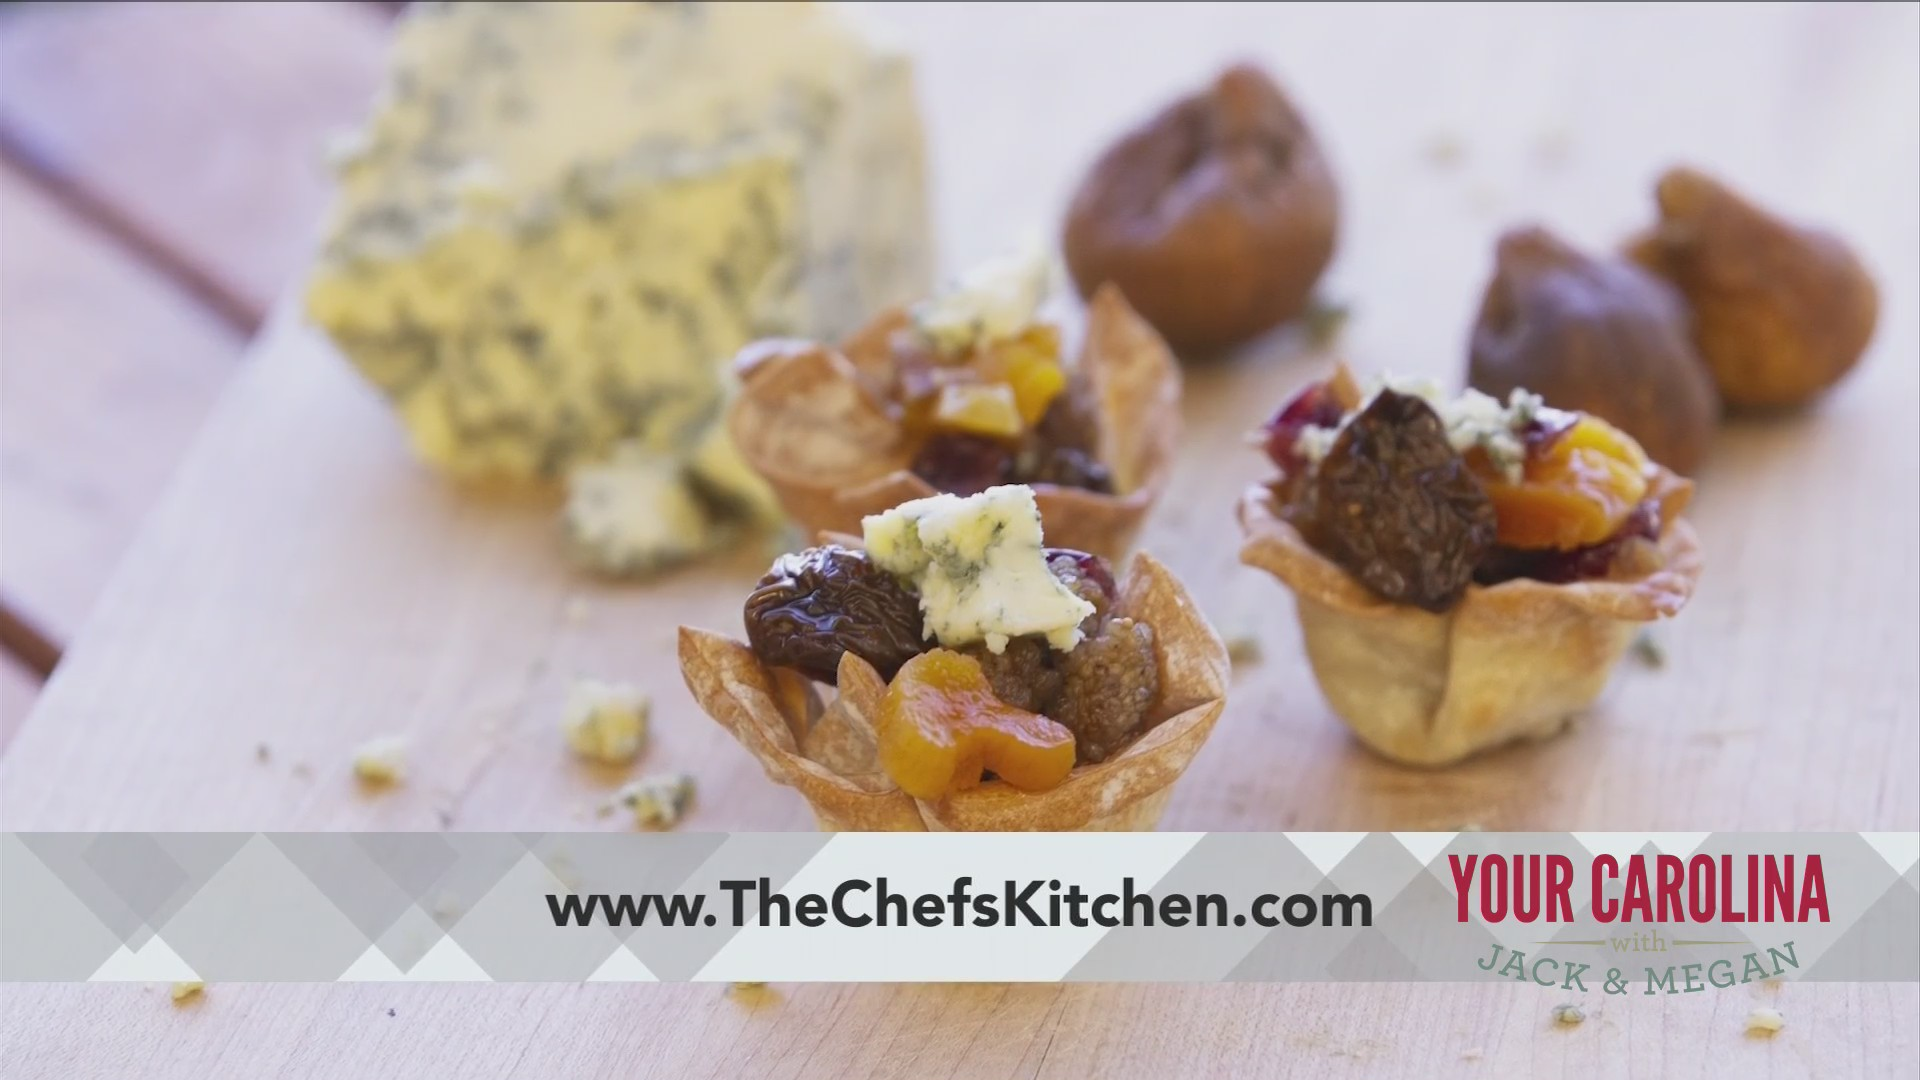 Chef's Kitchen - Macerated Dried Fruit